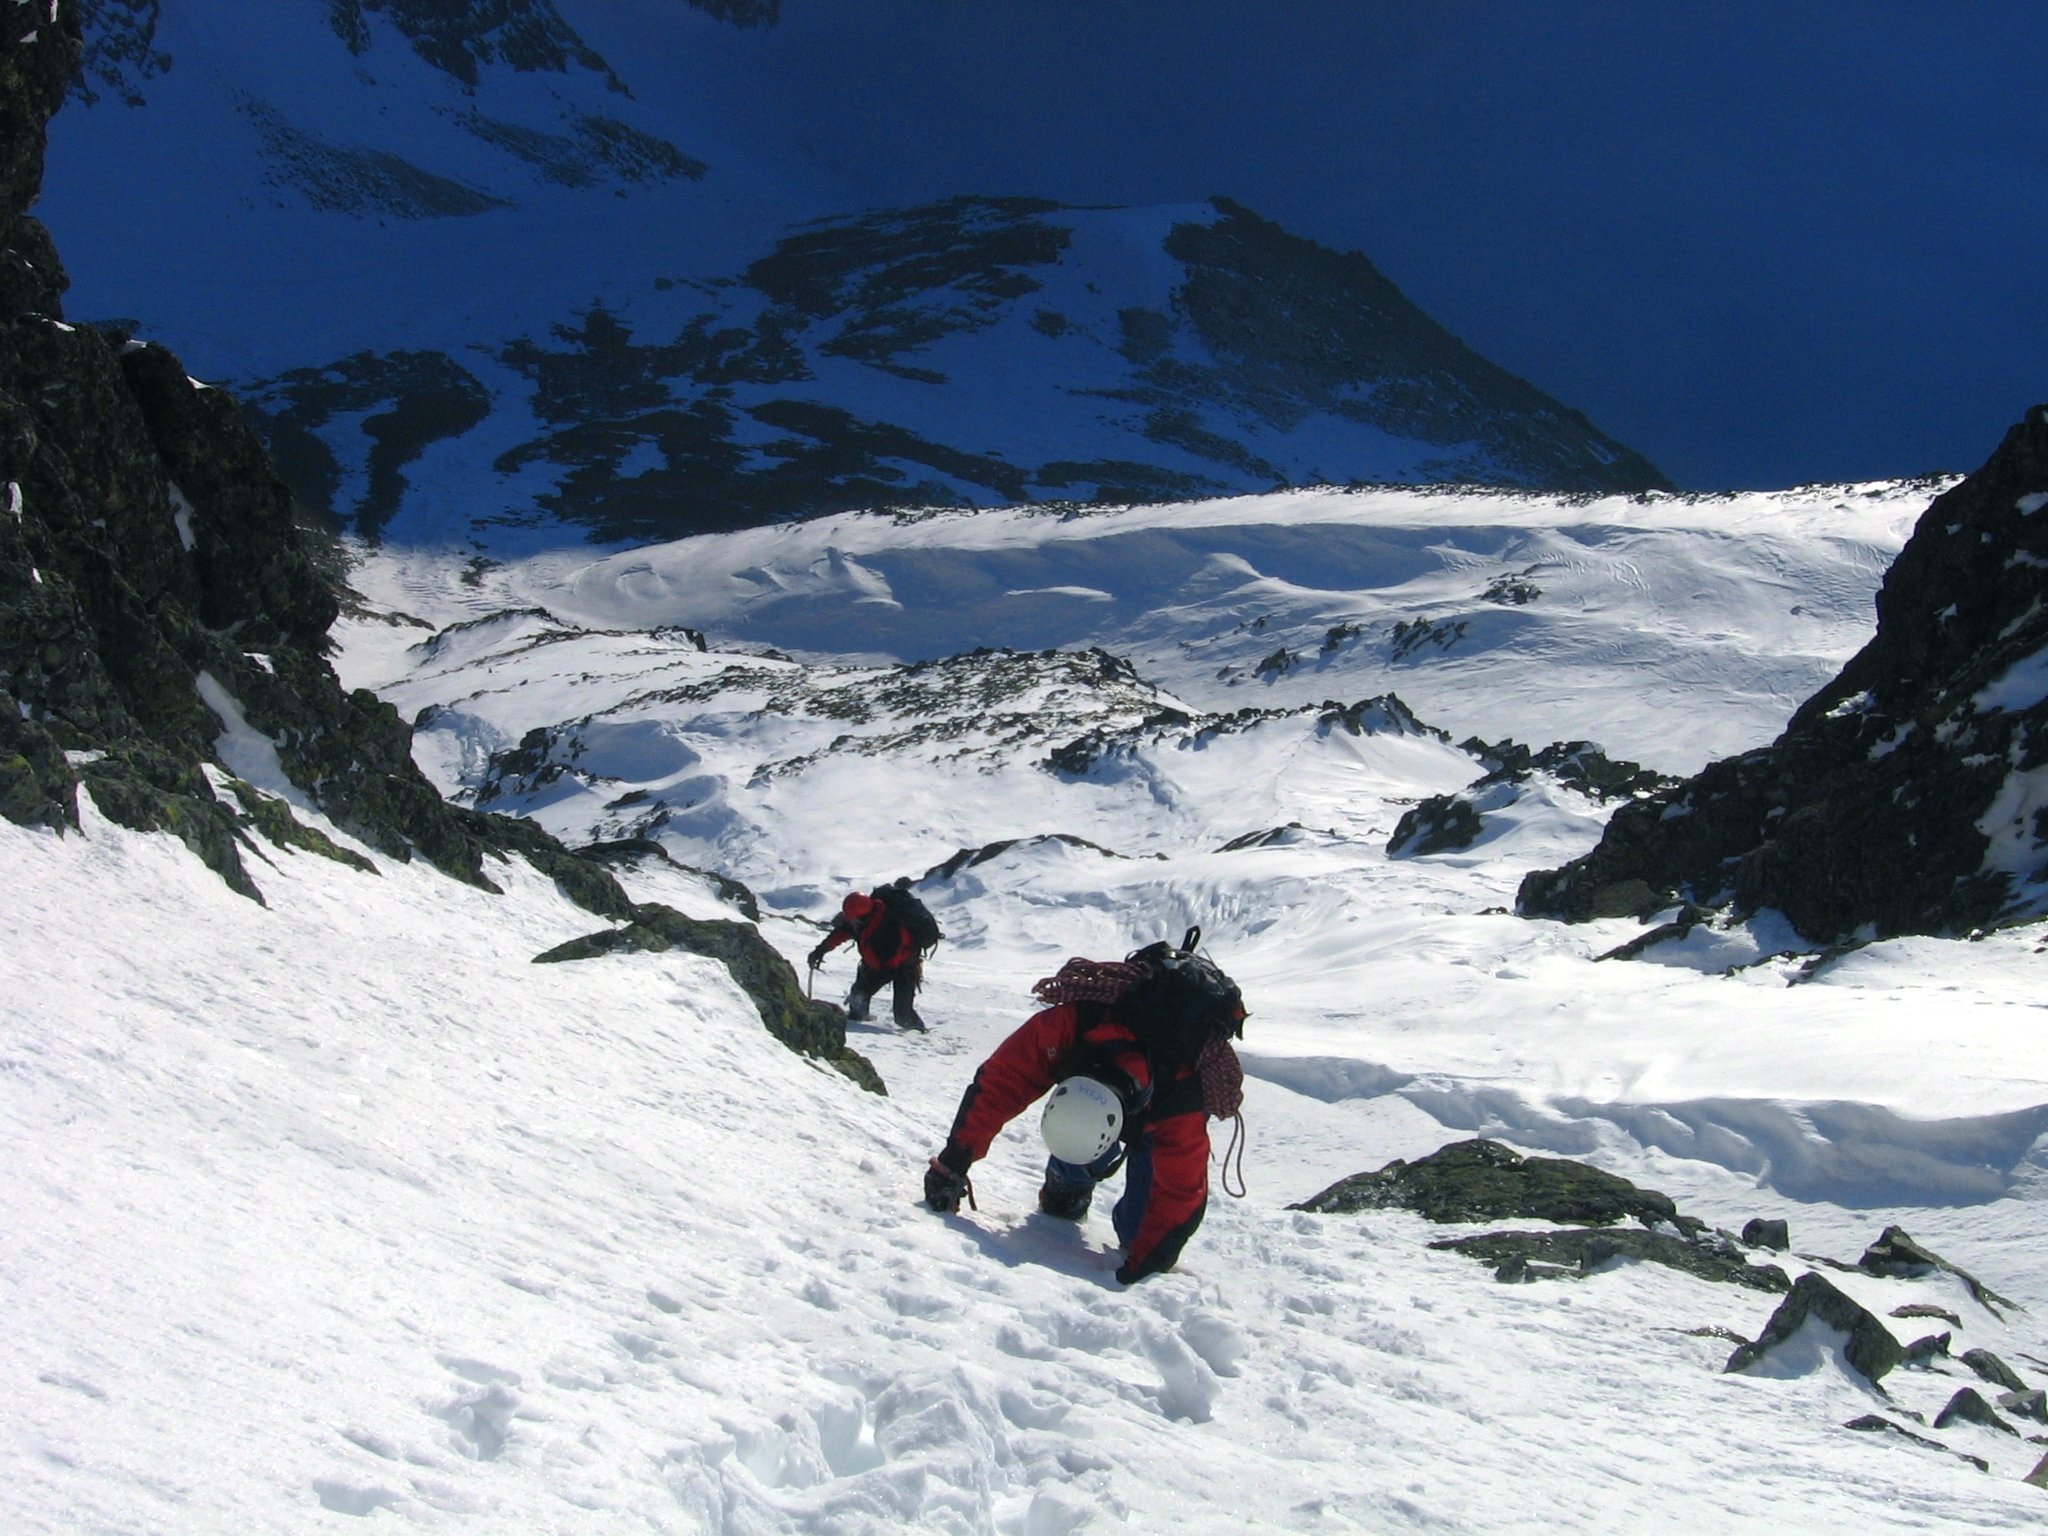 Mountaineers in High Tatry mountains winter